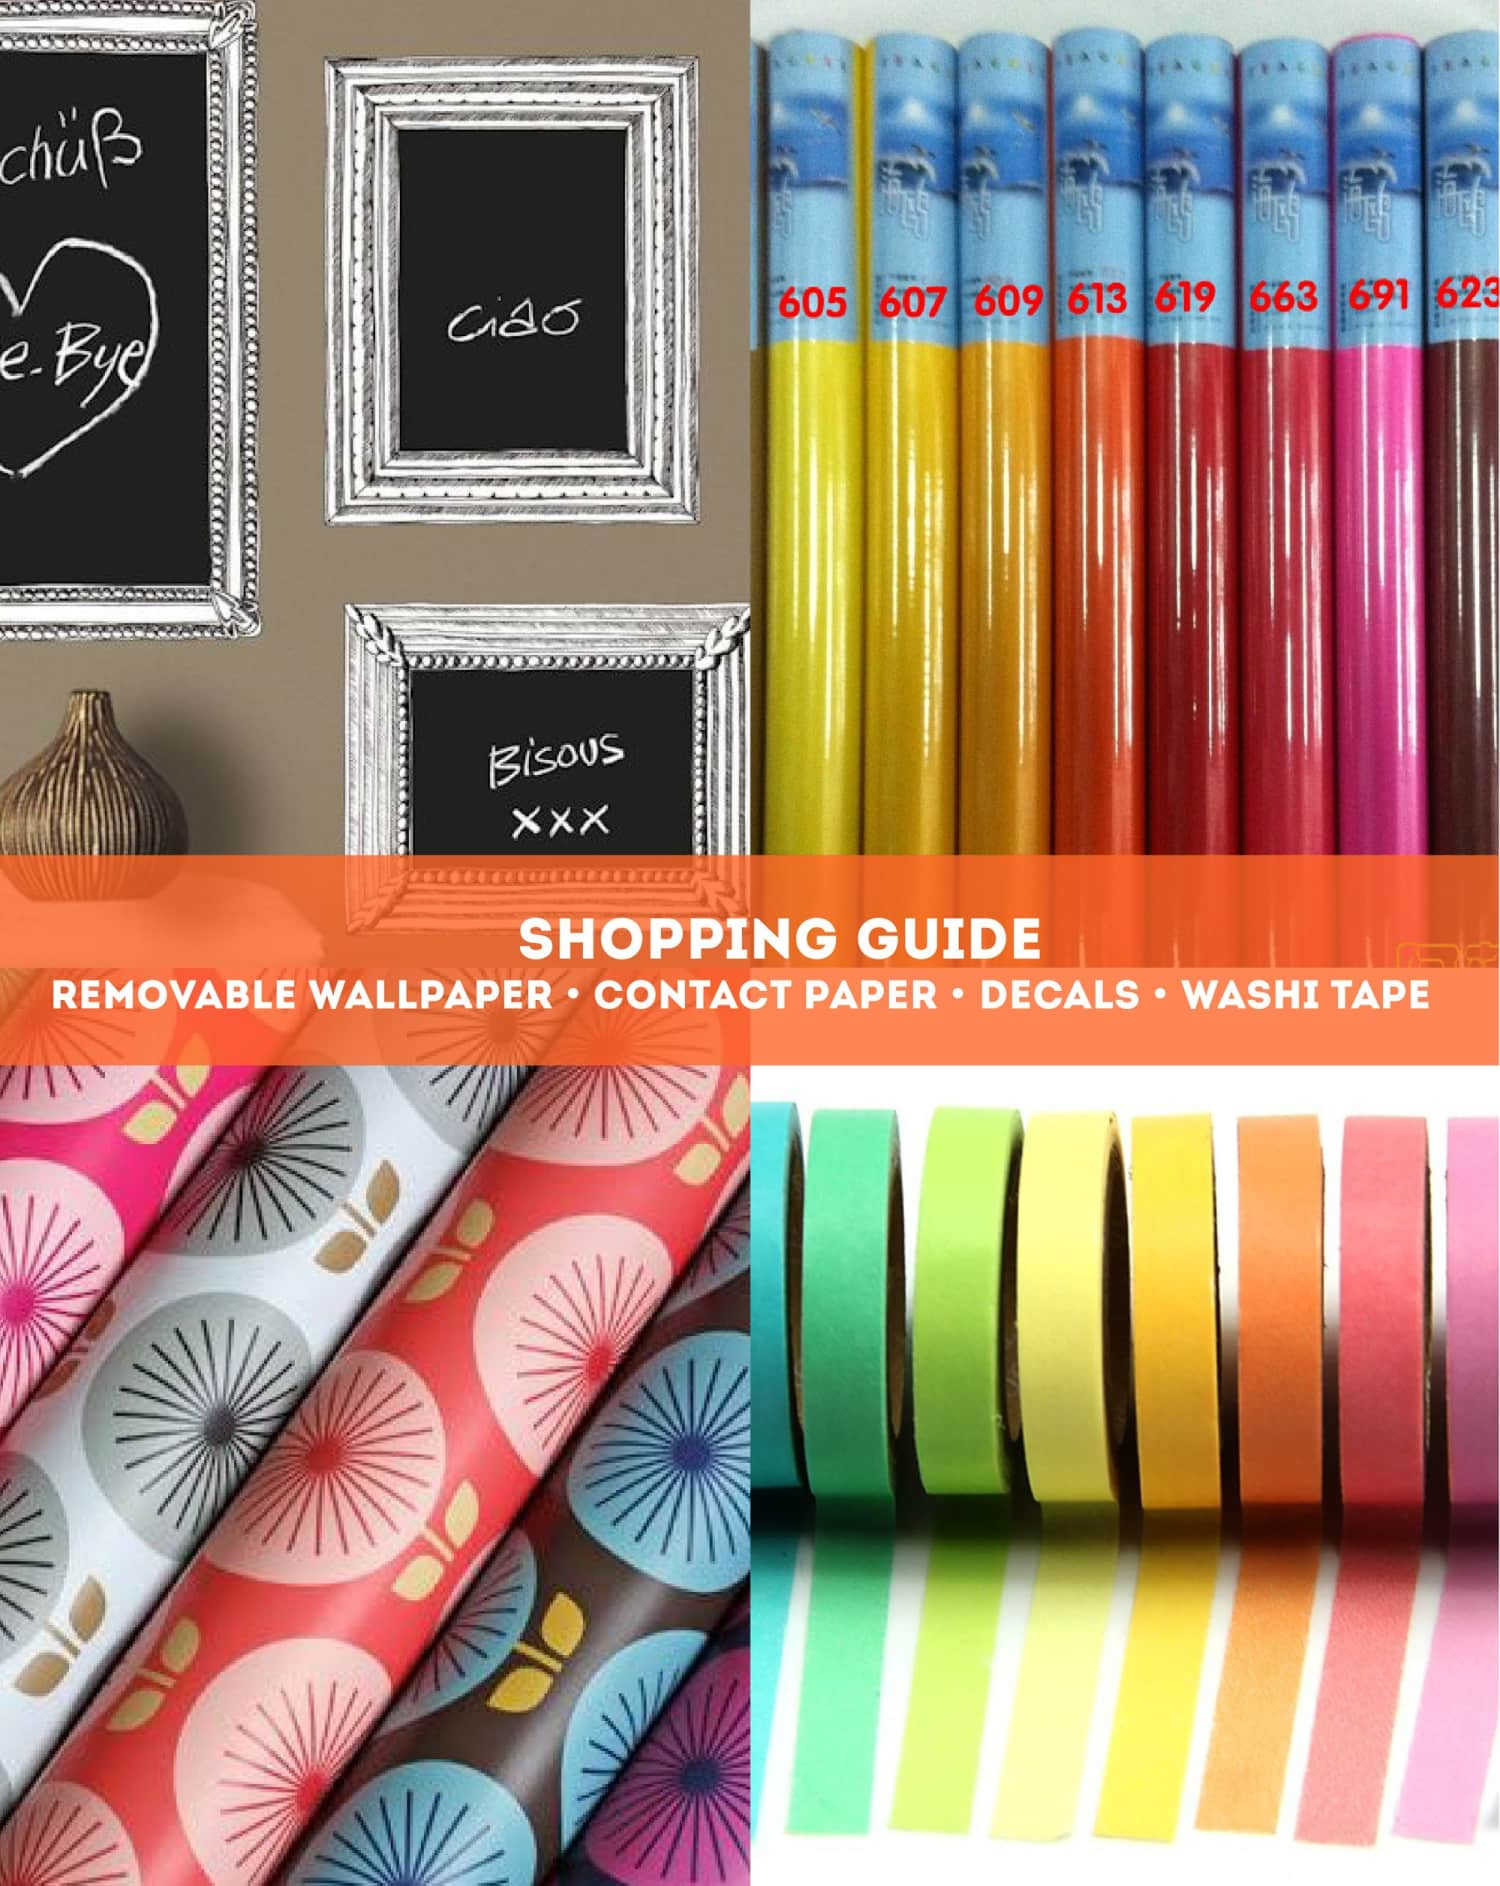 Shopping Resources: Decals, Removable Wallpaper, Washi Tape & Contact Paper